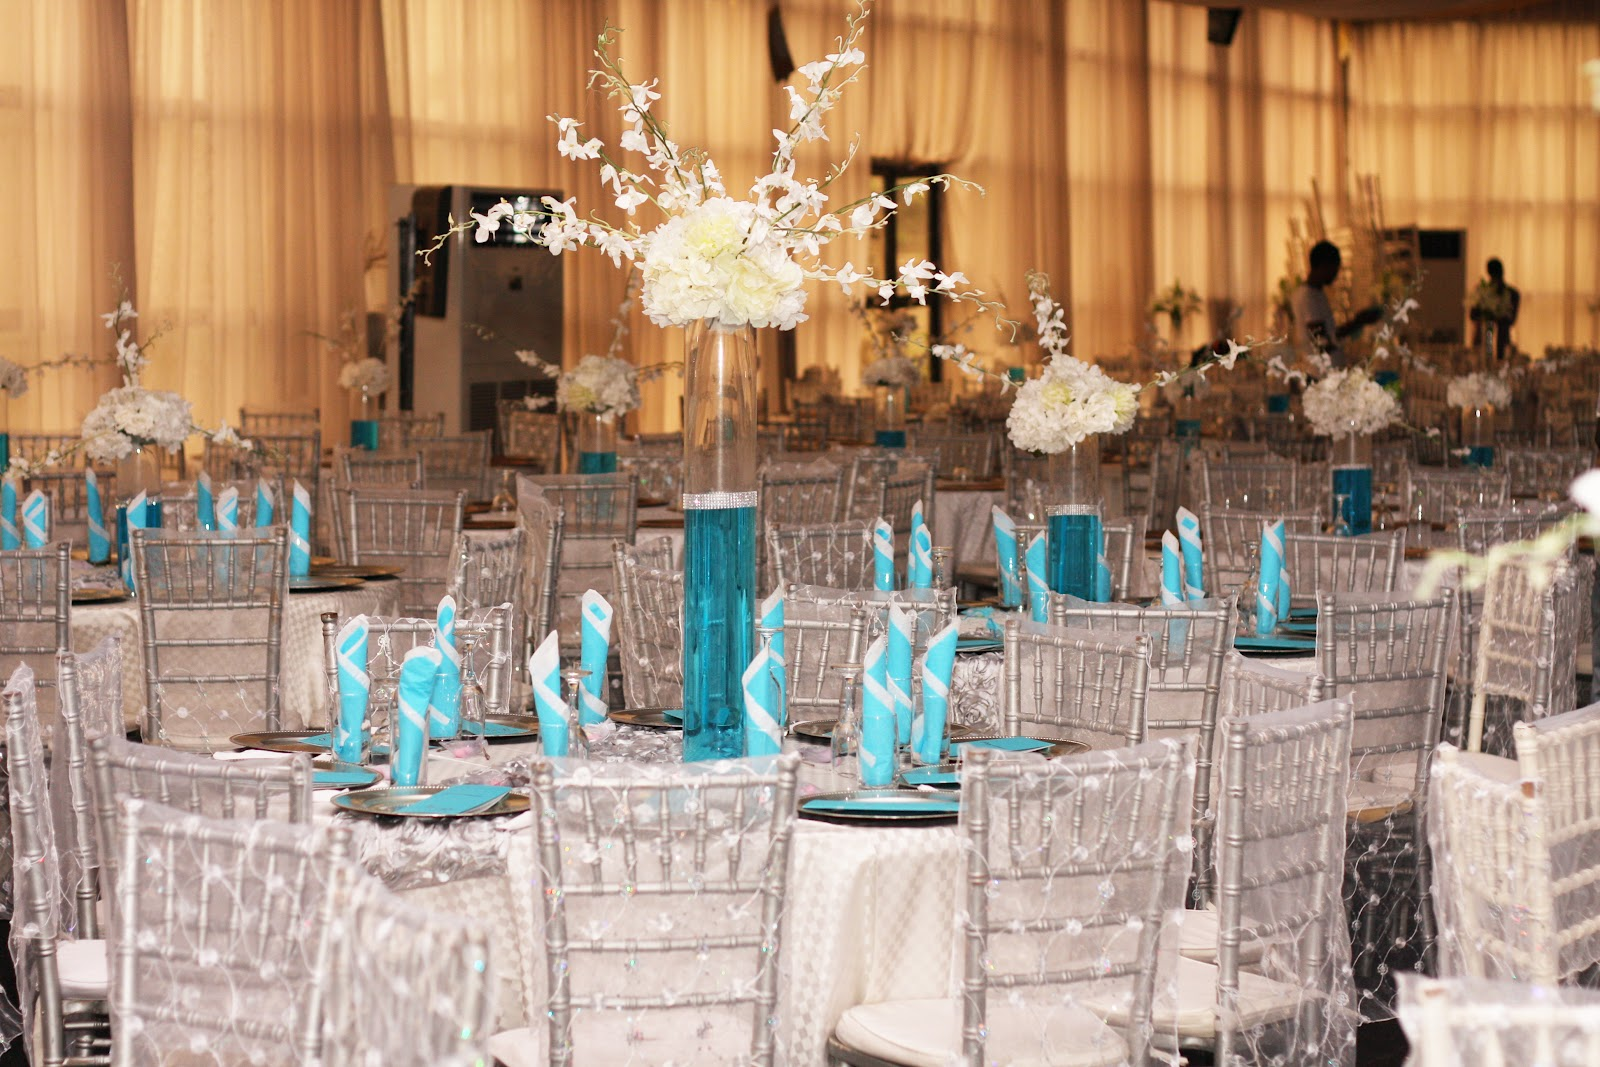 4bc50b694d3 AQUARIAN TOUCH EVENTS NG: TIFFANY BLUE WEDDING